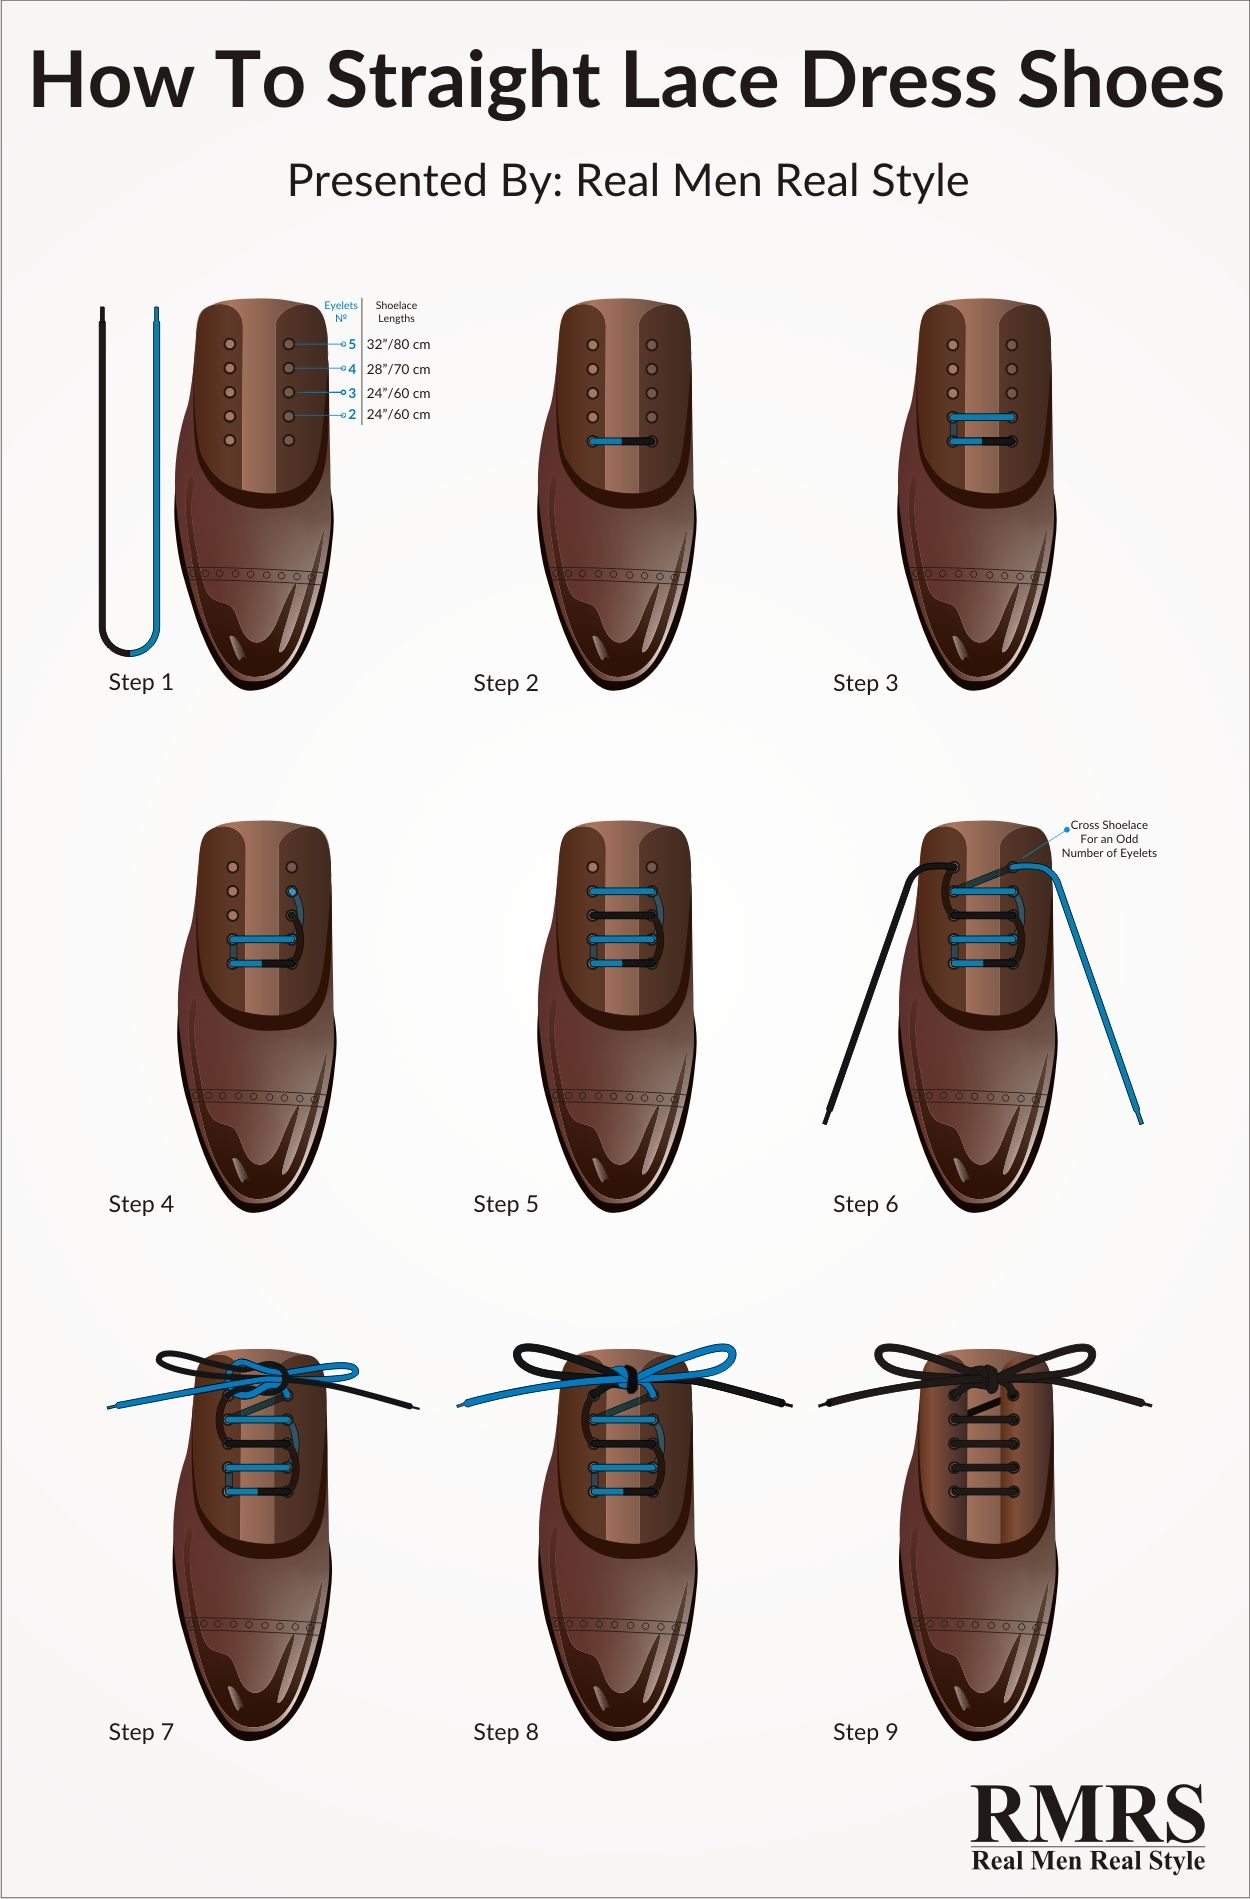 How to straight lace your dress shoes infographic